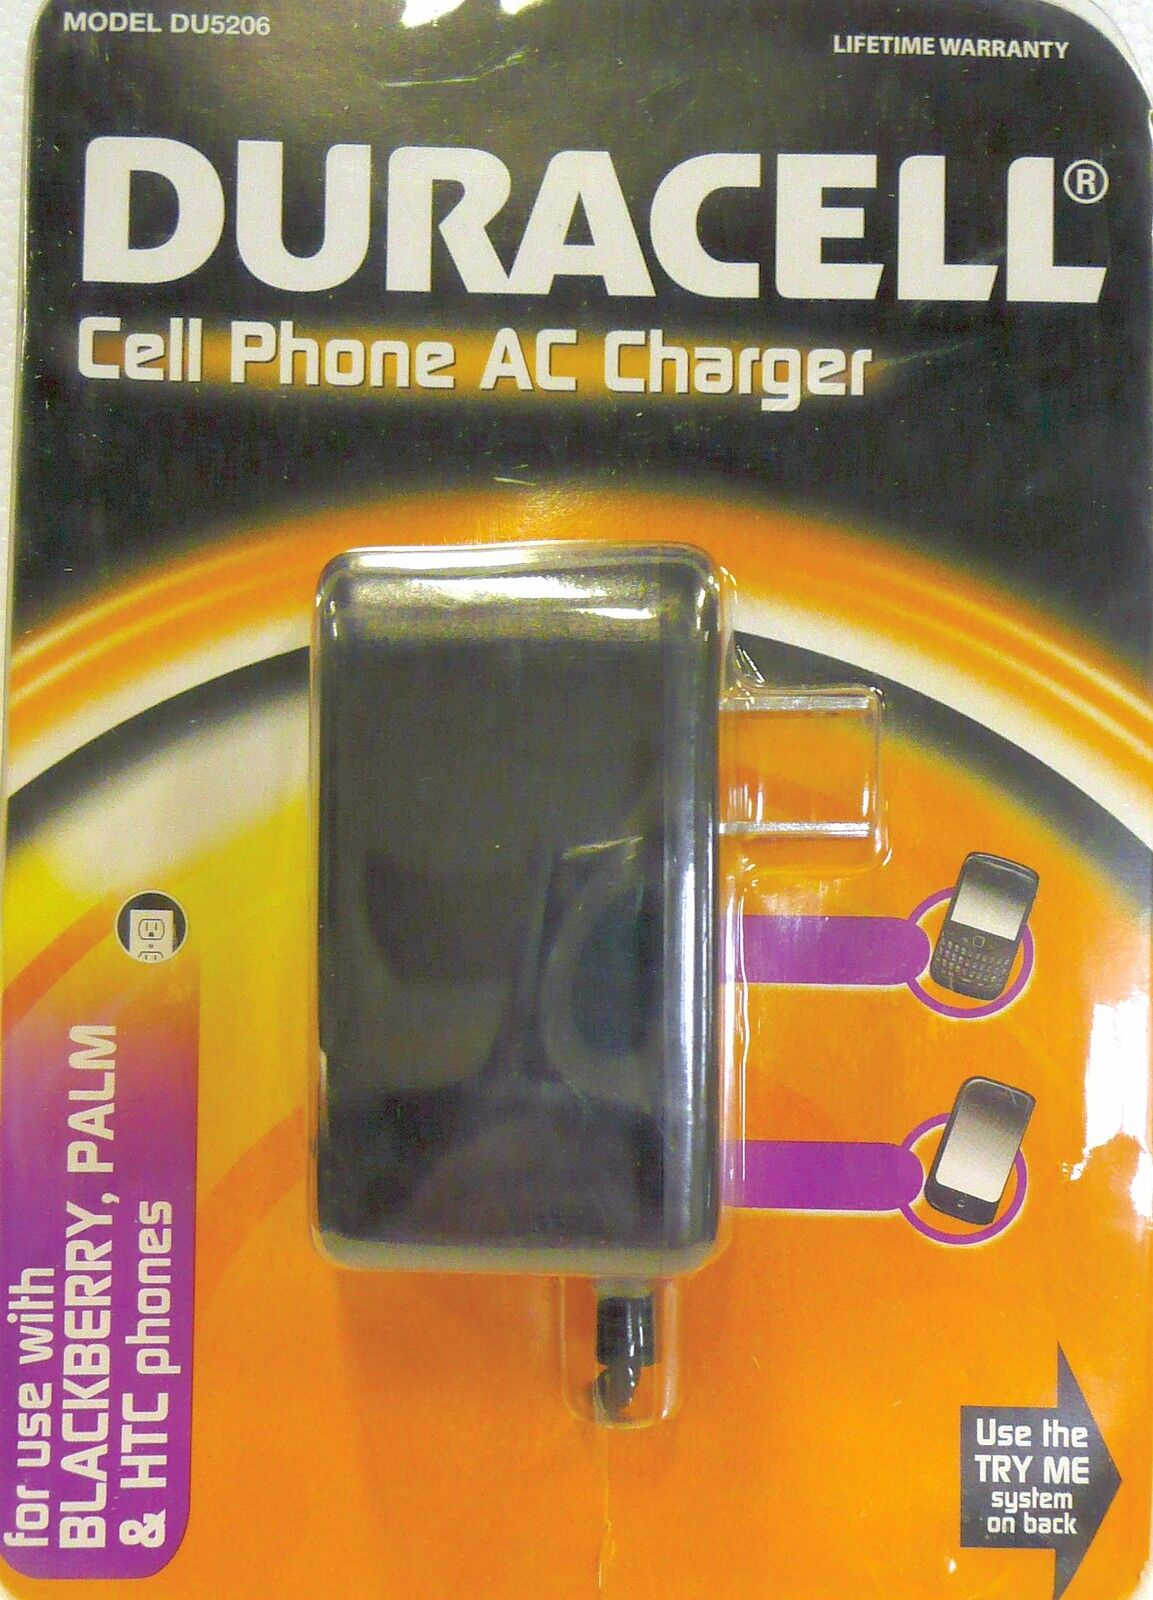 Duracell Du5206 Cell Phone Ac Charger Brand Ie517 Blackberry Palm Sealed